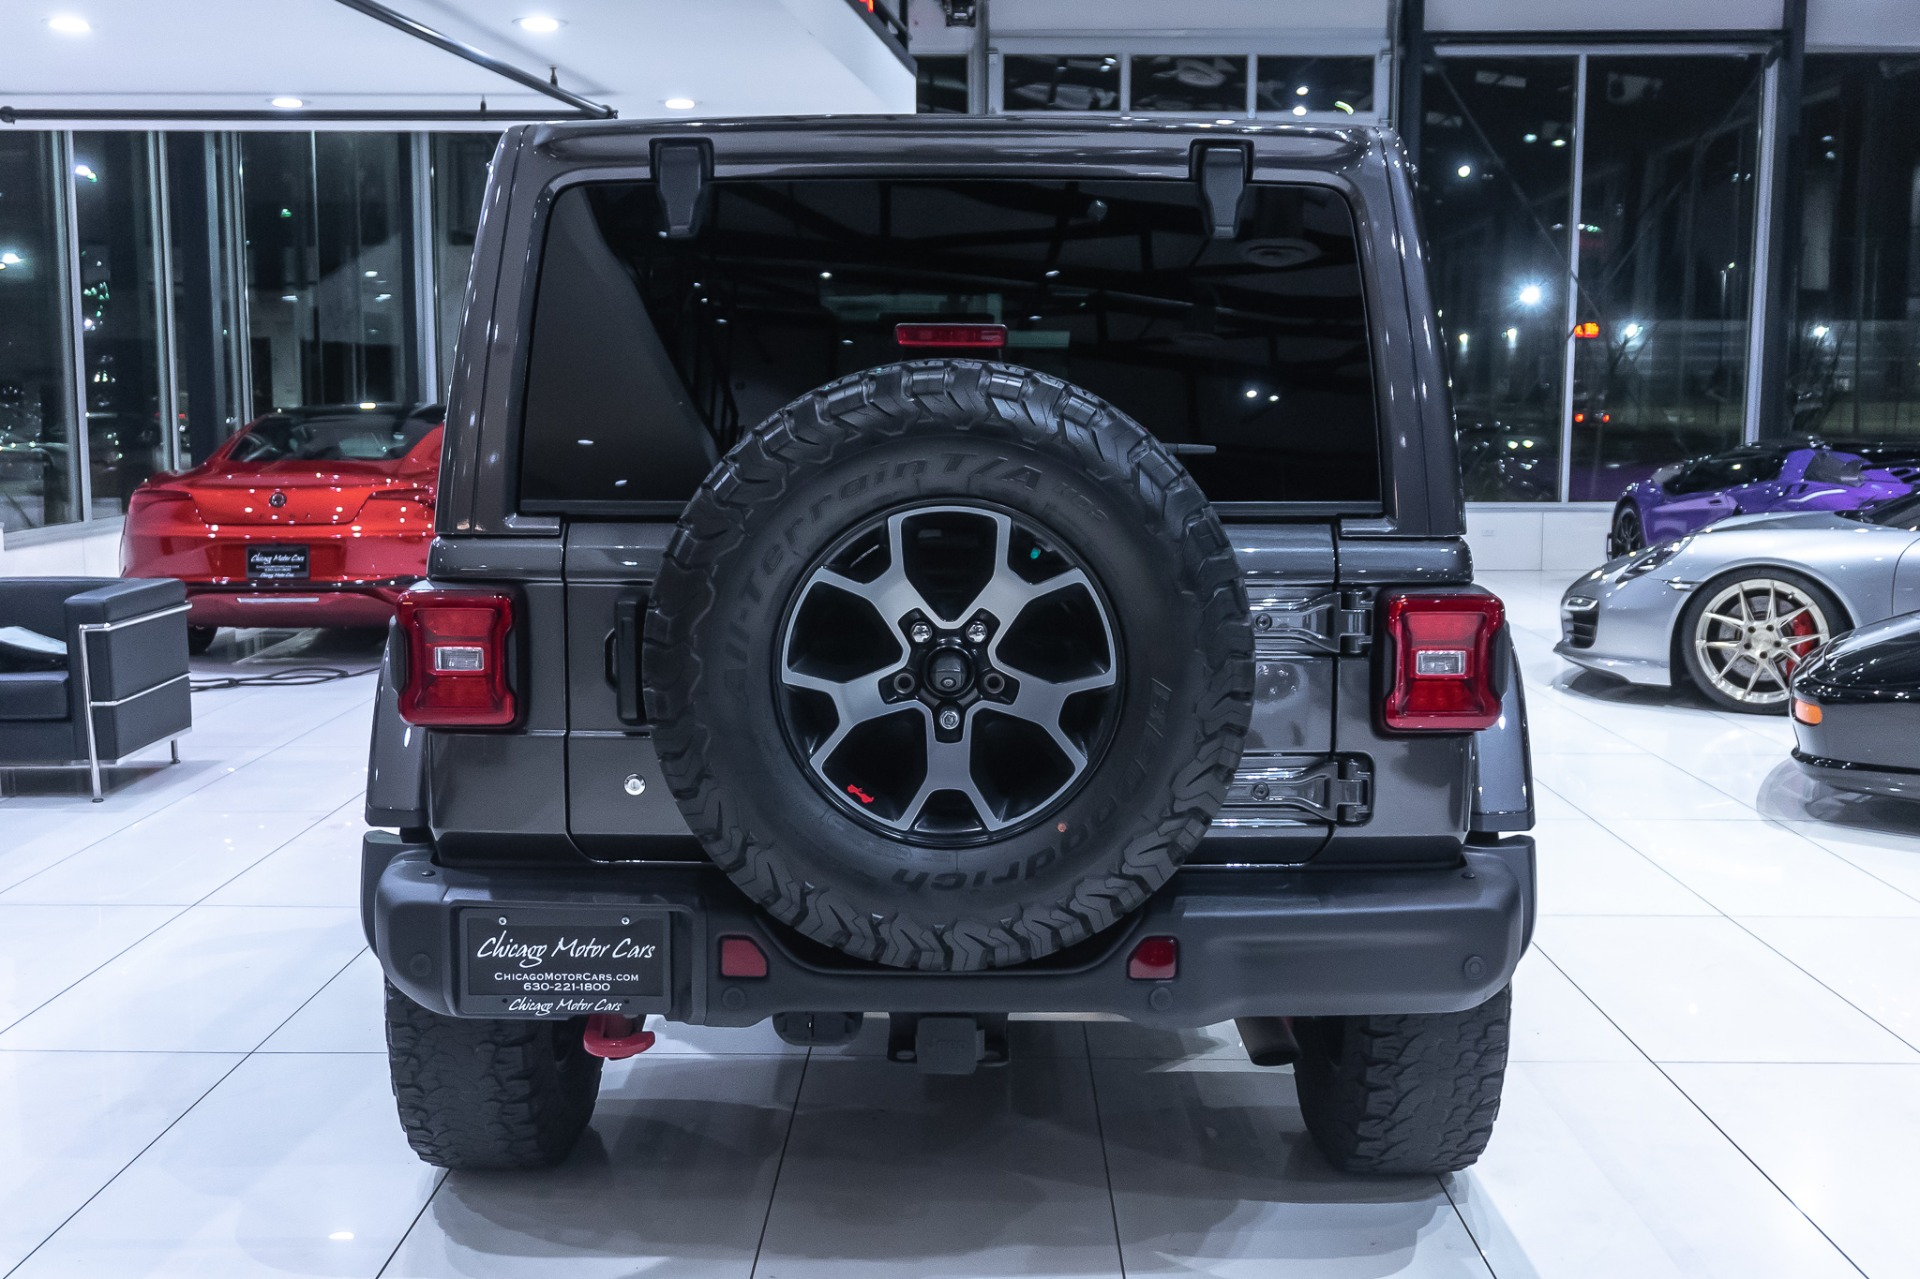 Used-2018-Jeep-Wrangler-Unlimited-Rubicon-LED-Lighting-Package-Body-Color-Hard-Top-Loaded-Leather